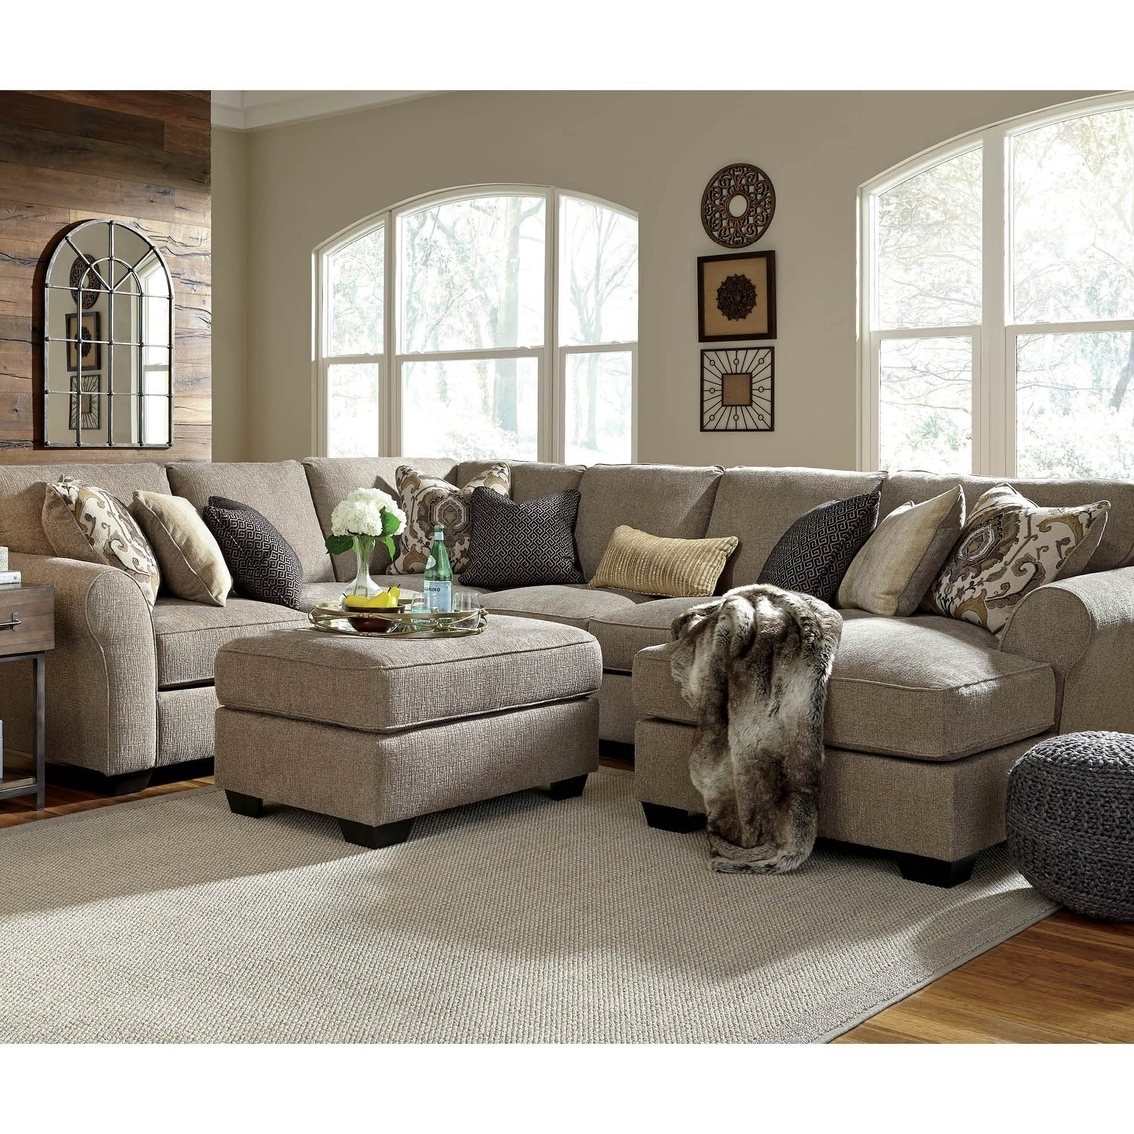 Laf Sofa Raf Loveseat | Baci Living Room Within Turdur 2 Piece Sectionals With Laf Loveseat (Image 9 of 25)